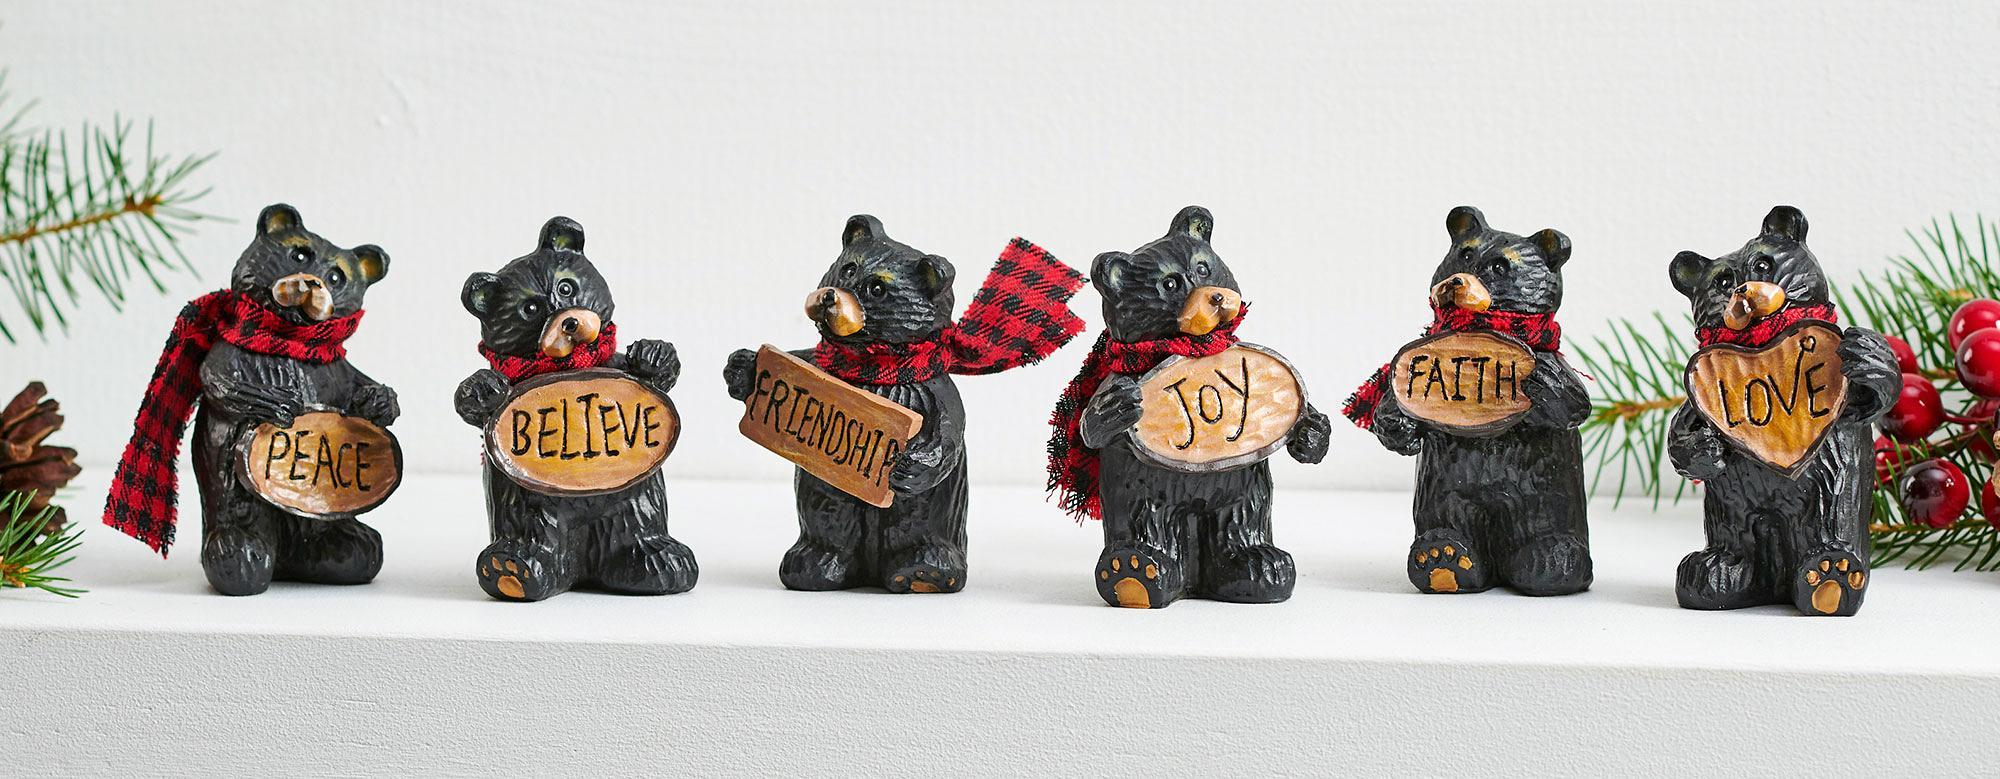 Holiday Cheer Bear Figurines